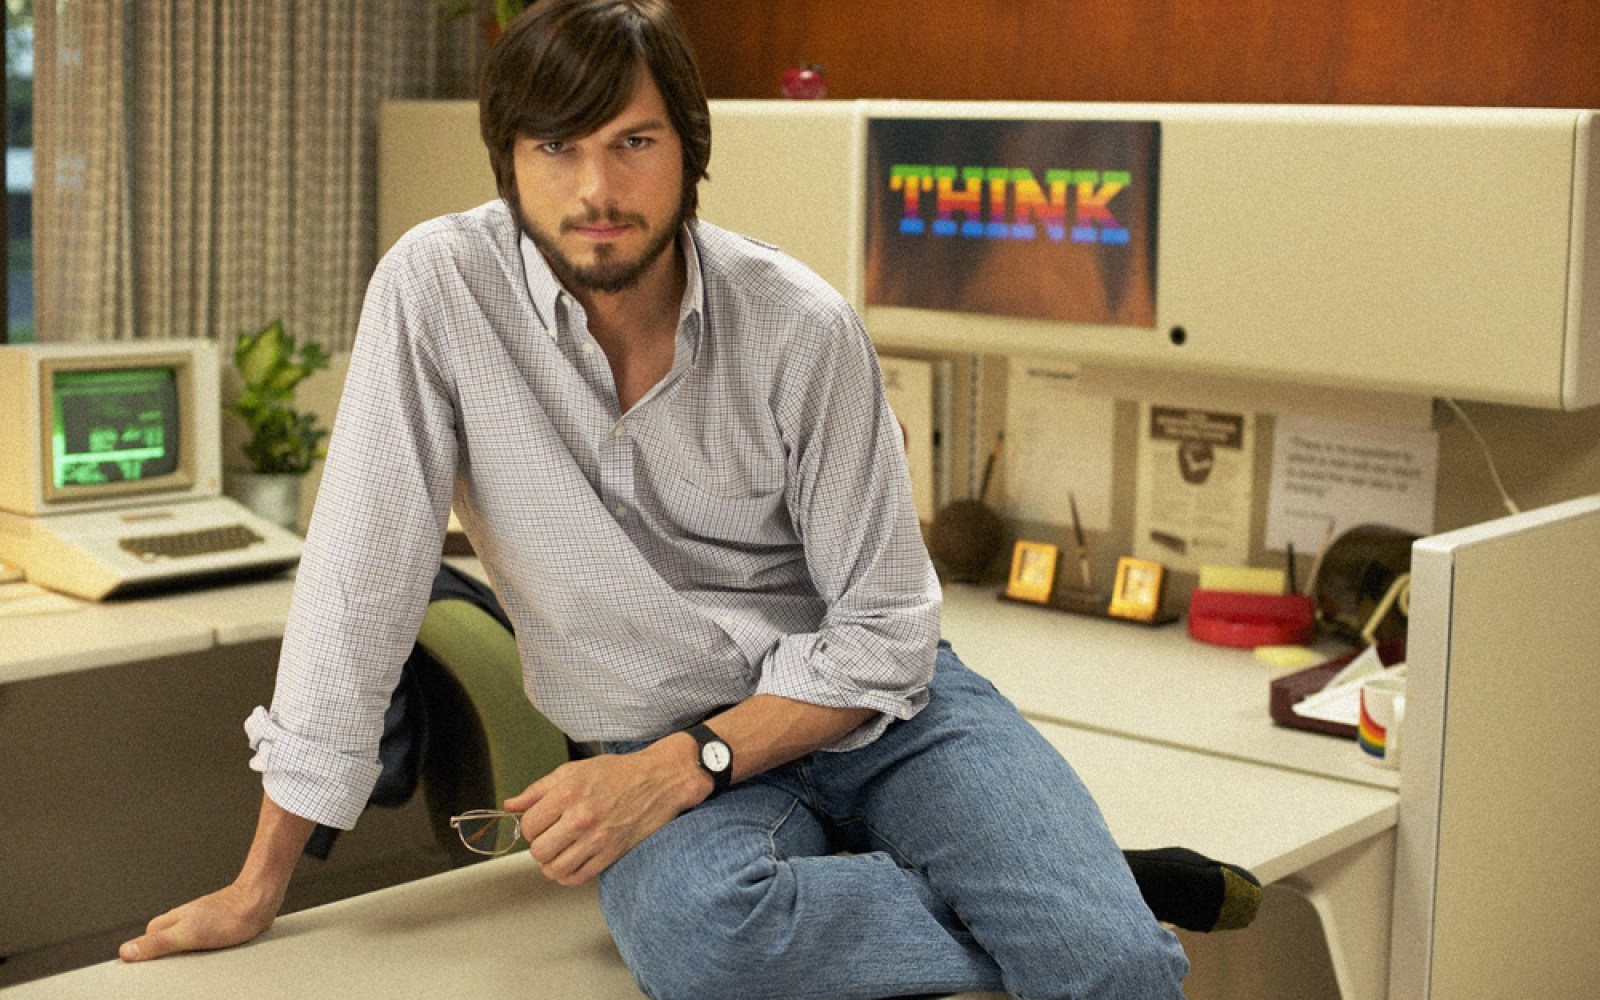 'Jobs' star Ashton Kutcher rumored to be close to $10M deal … to sell Windows PCs